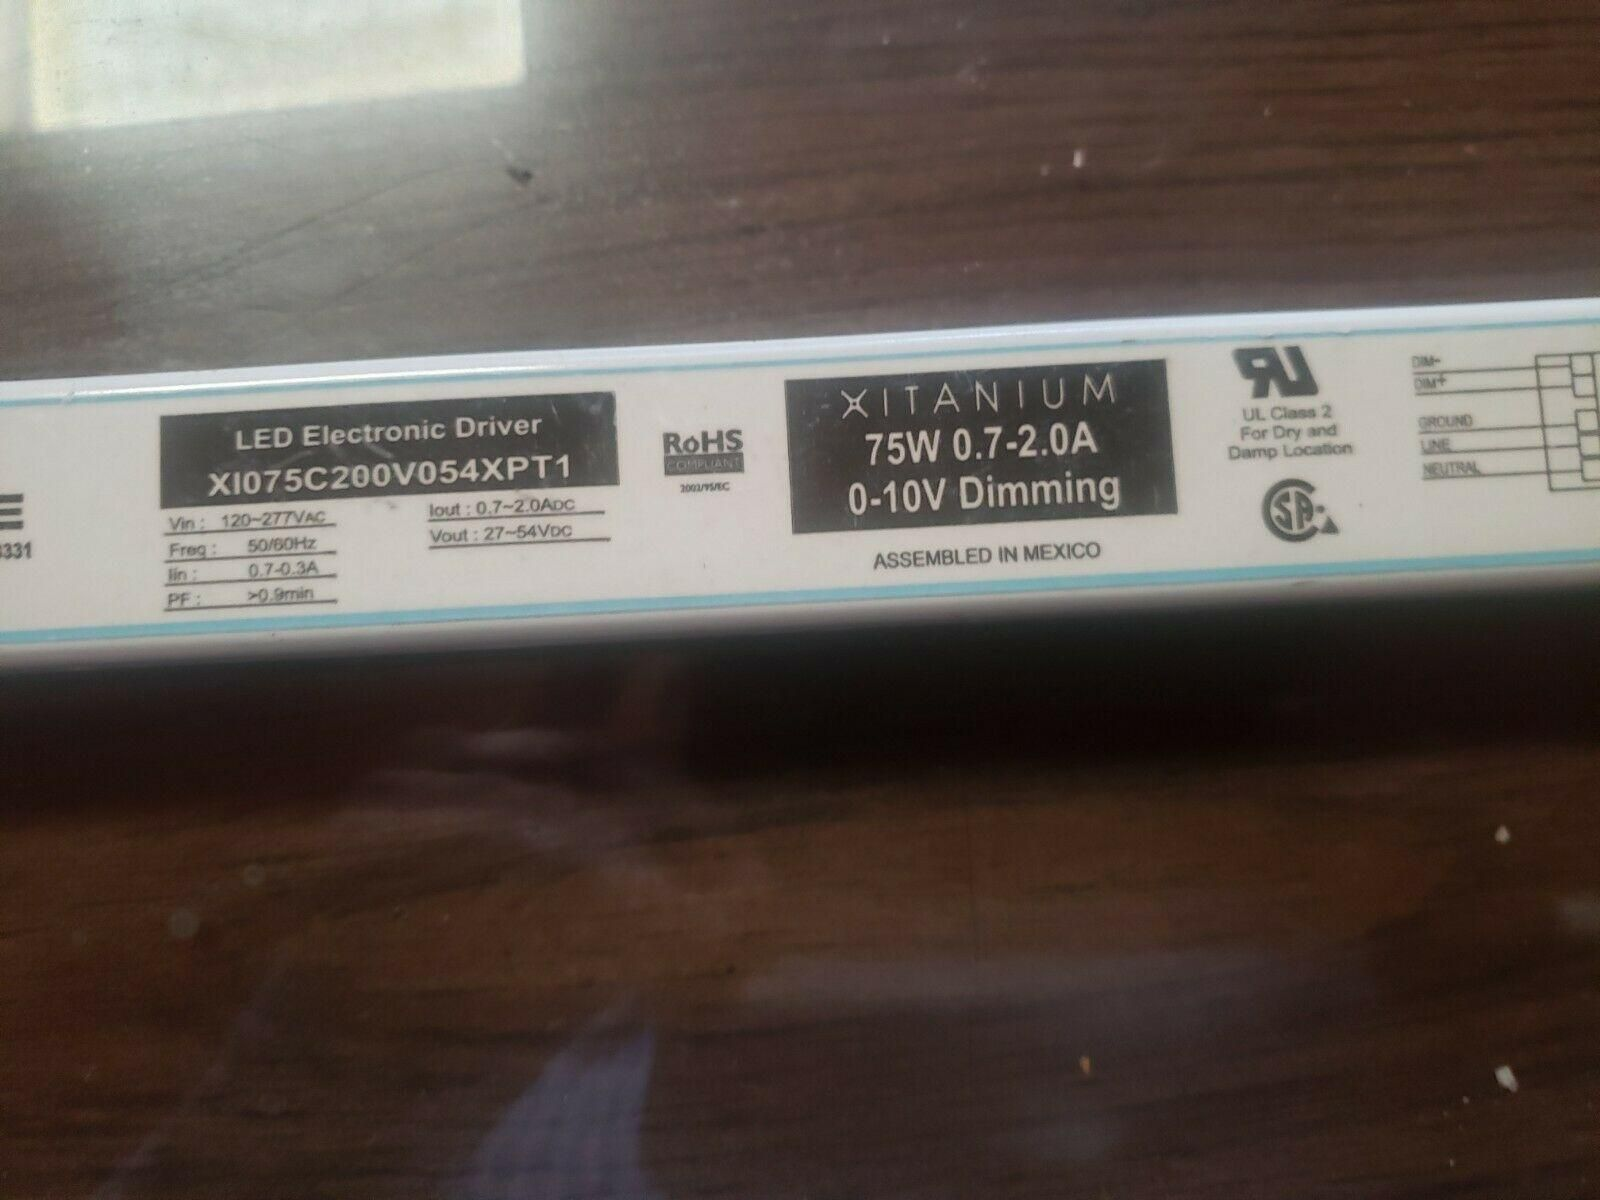 Philips Advance X1075C200V054XPT1  0-10V driver 75W OUT OF BOX 14661/4